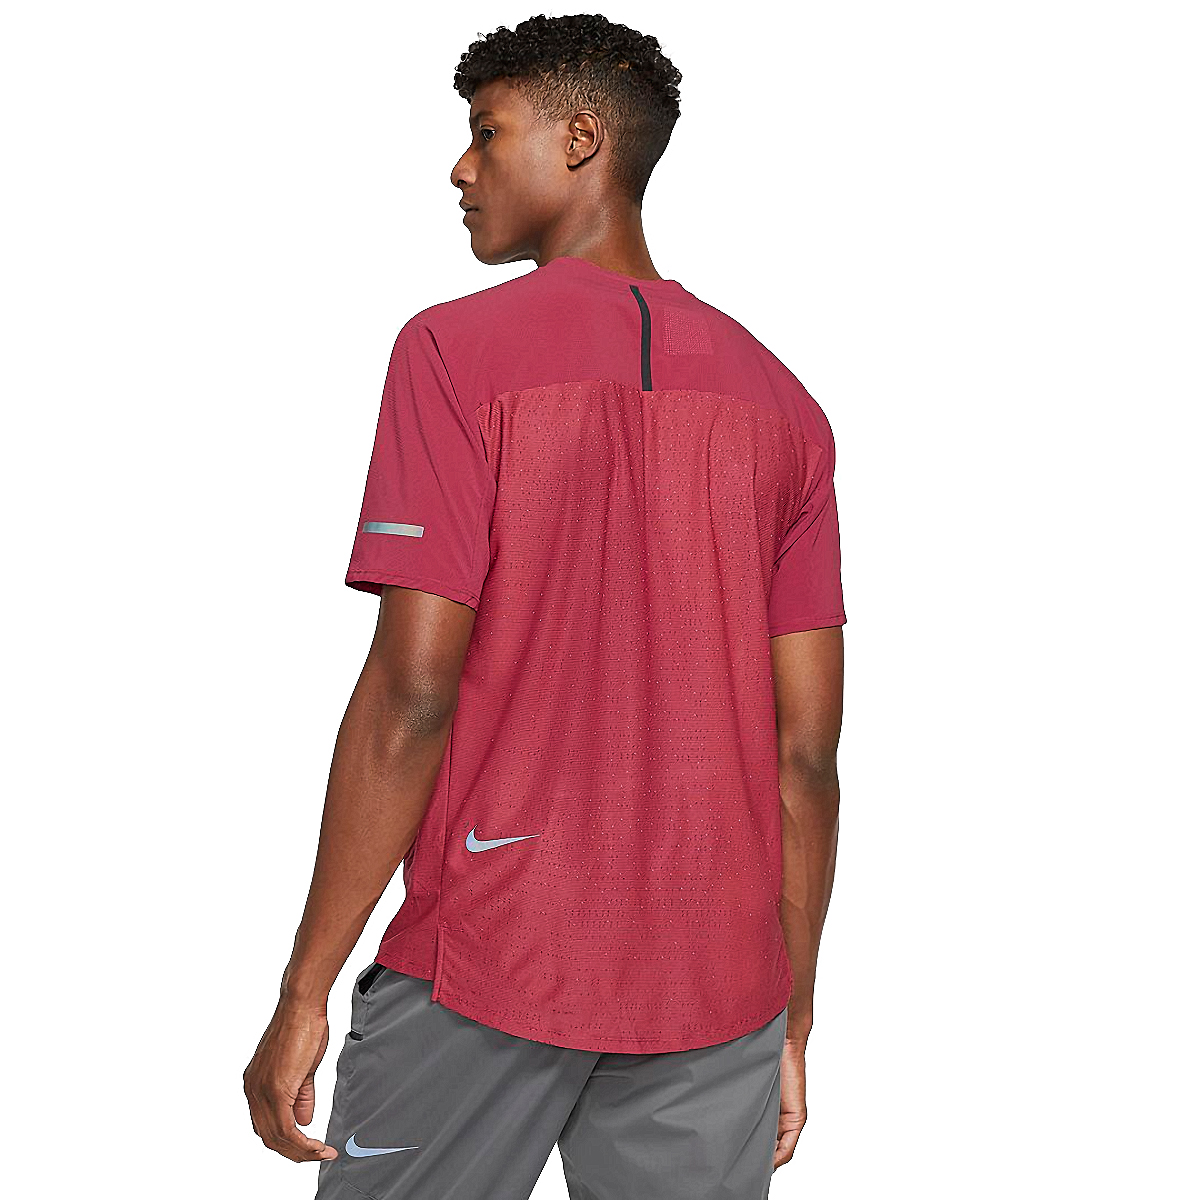 Men's Nike Tech Pack Top Hybrid Short Sleeve  - Color: Red - Size: S, Red, large, image 2